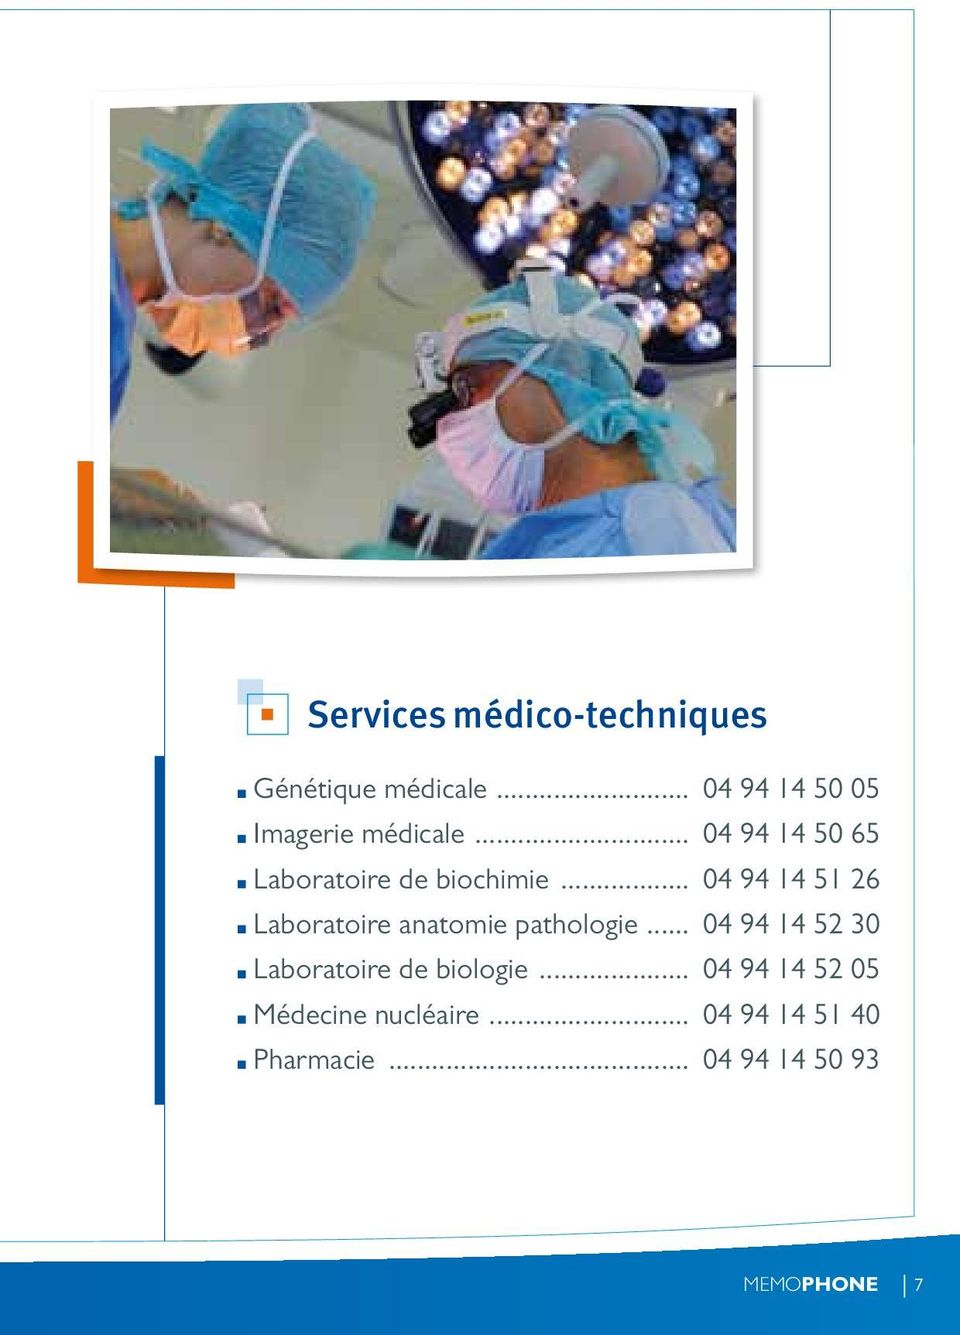 .. 04 94 14 51 26 Laboratoire anatomie pathologie.